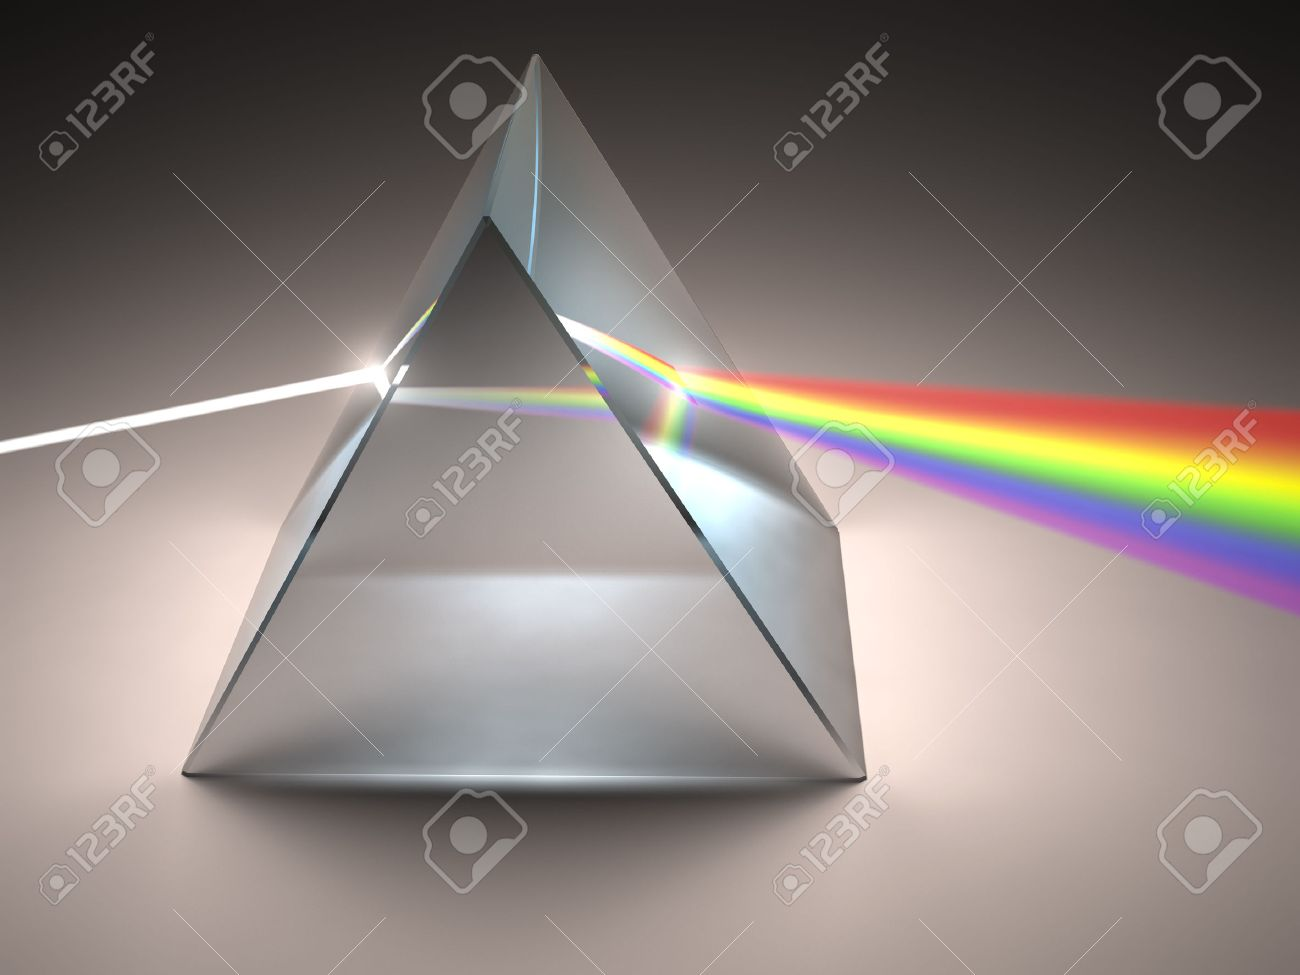 The crystal prism disperses white light into many colors. - 29284422